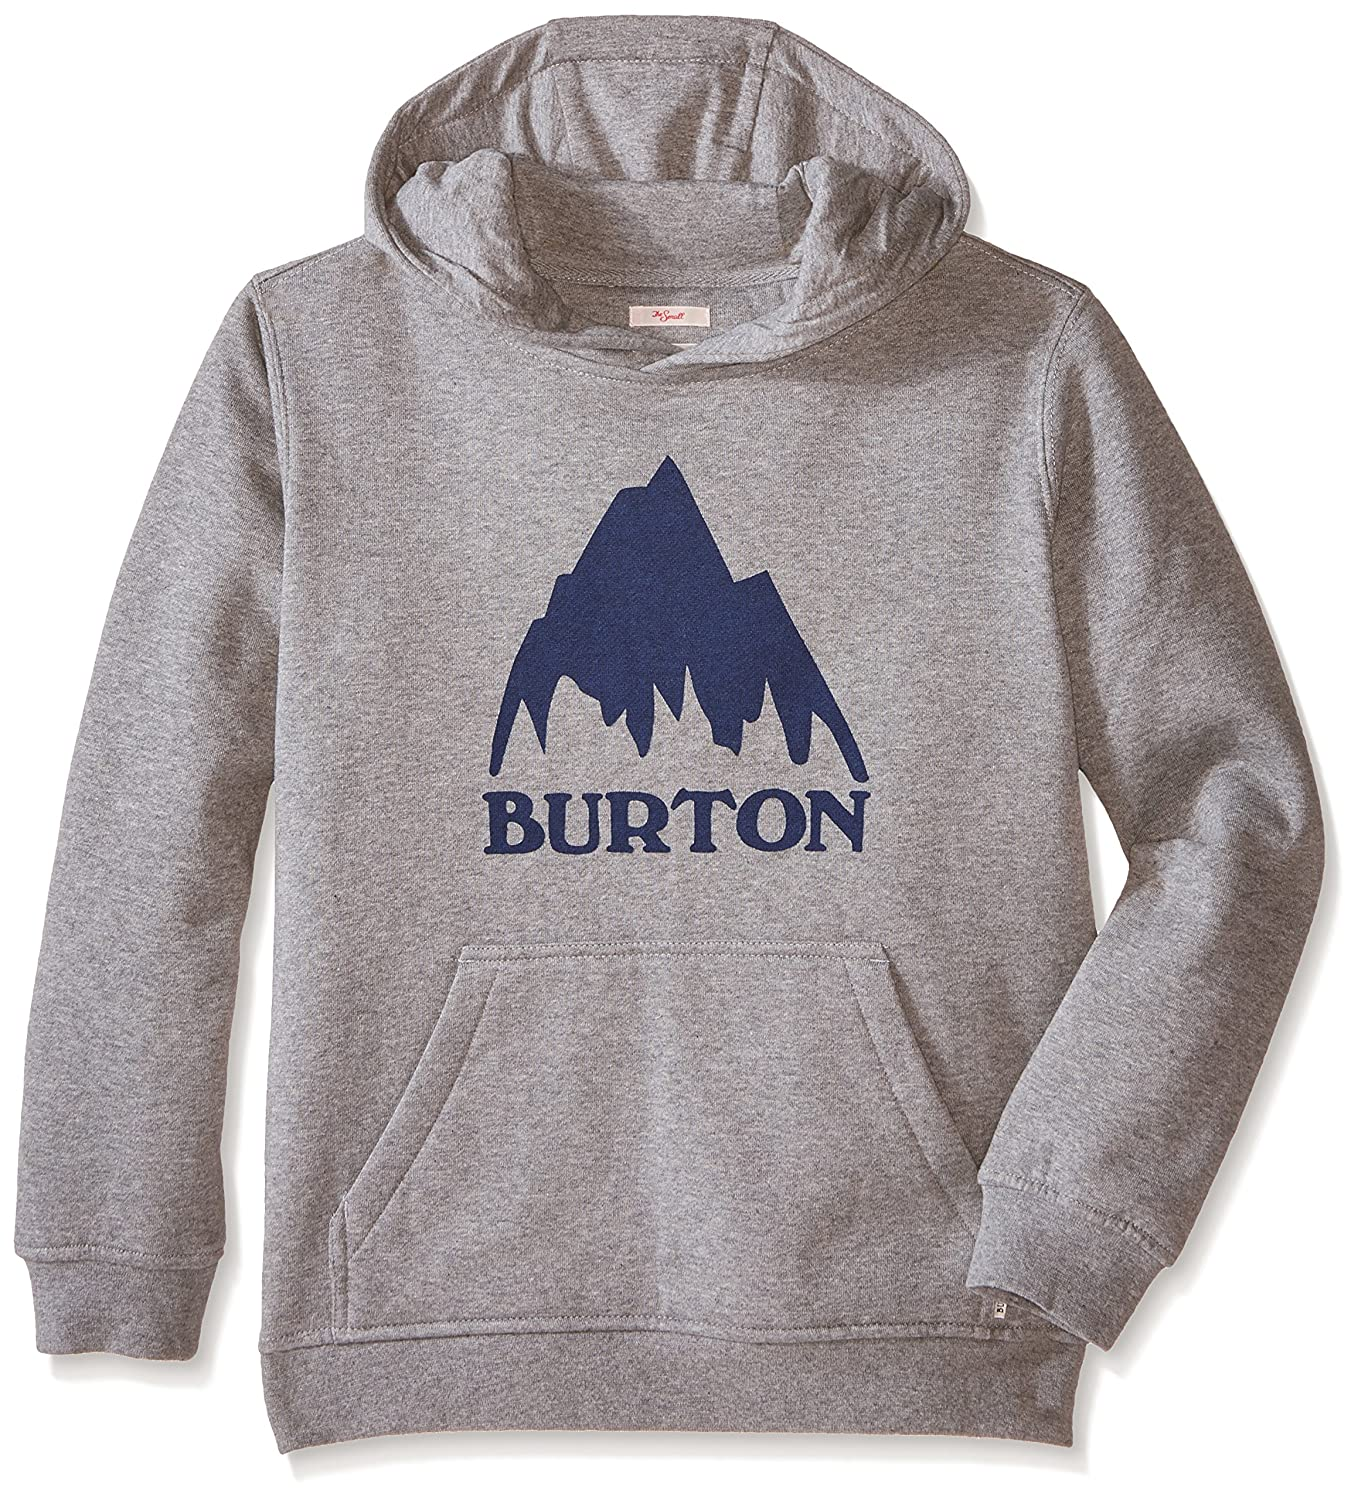 Classic Mountain Pullover Hoodie, Gray Heather, Small Burton 137751